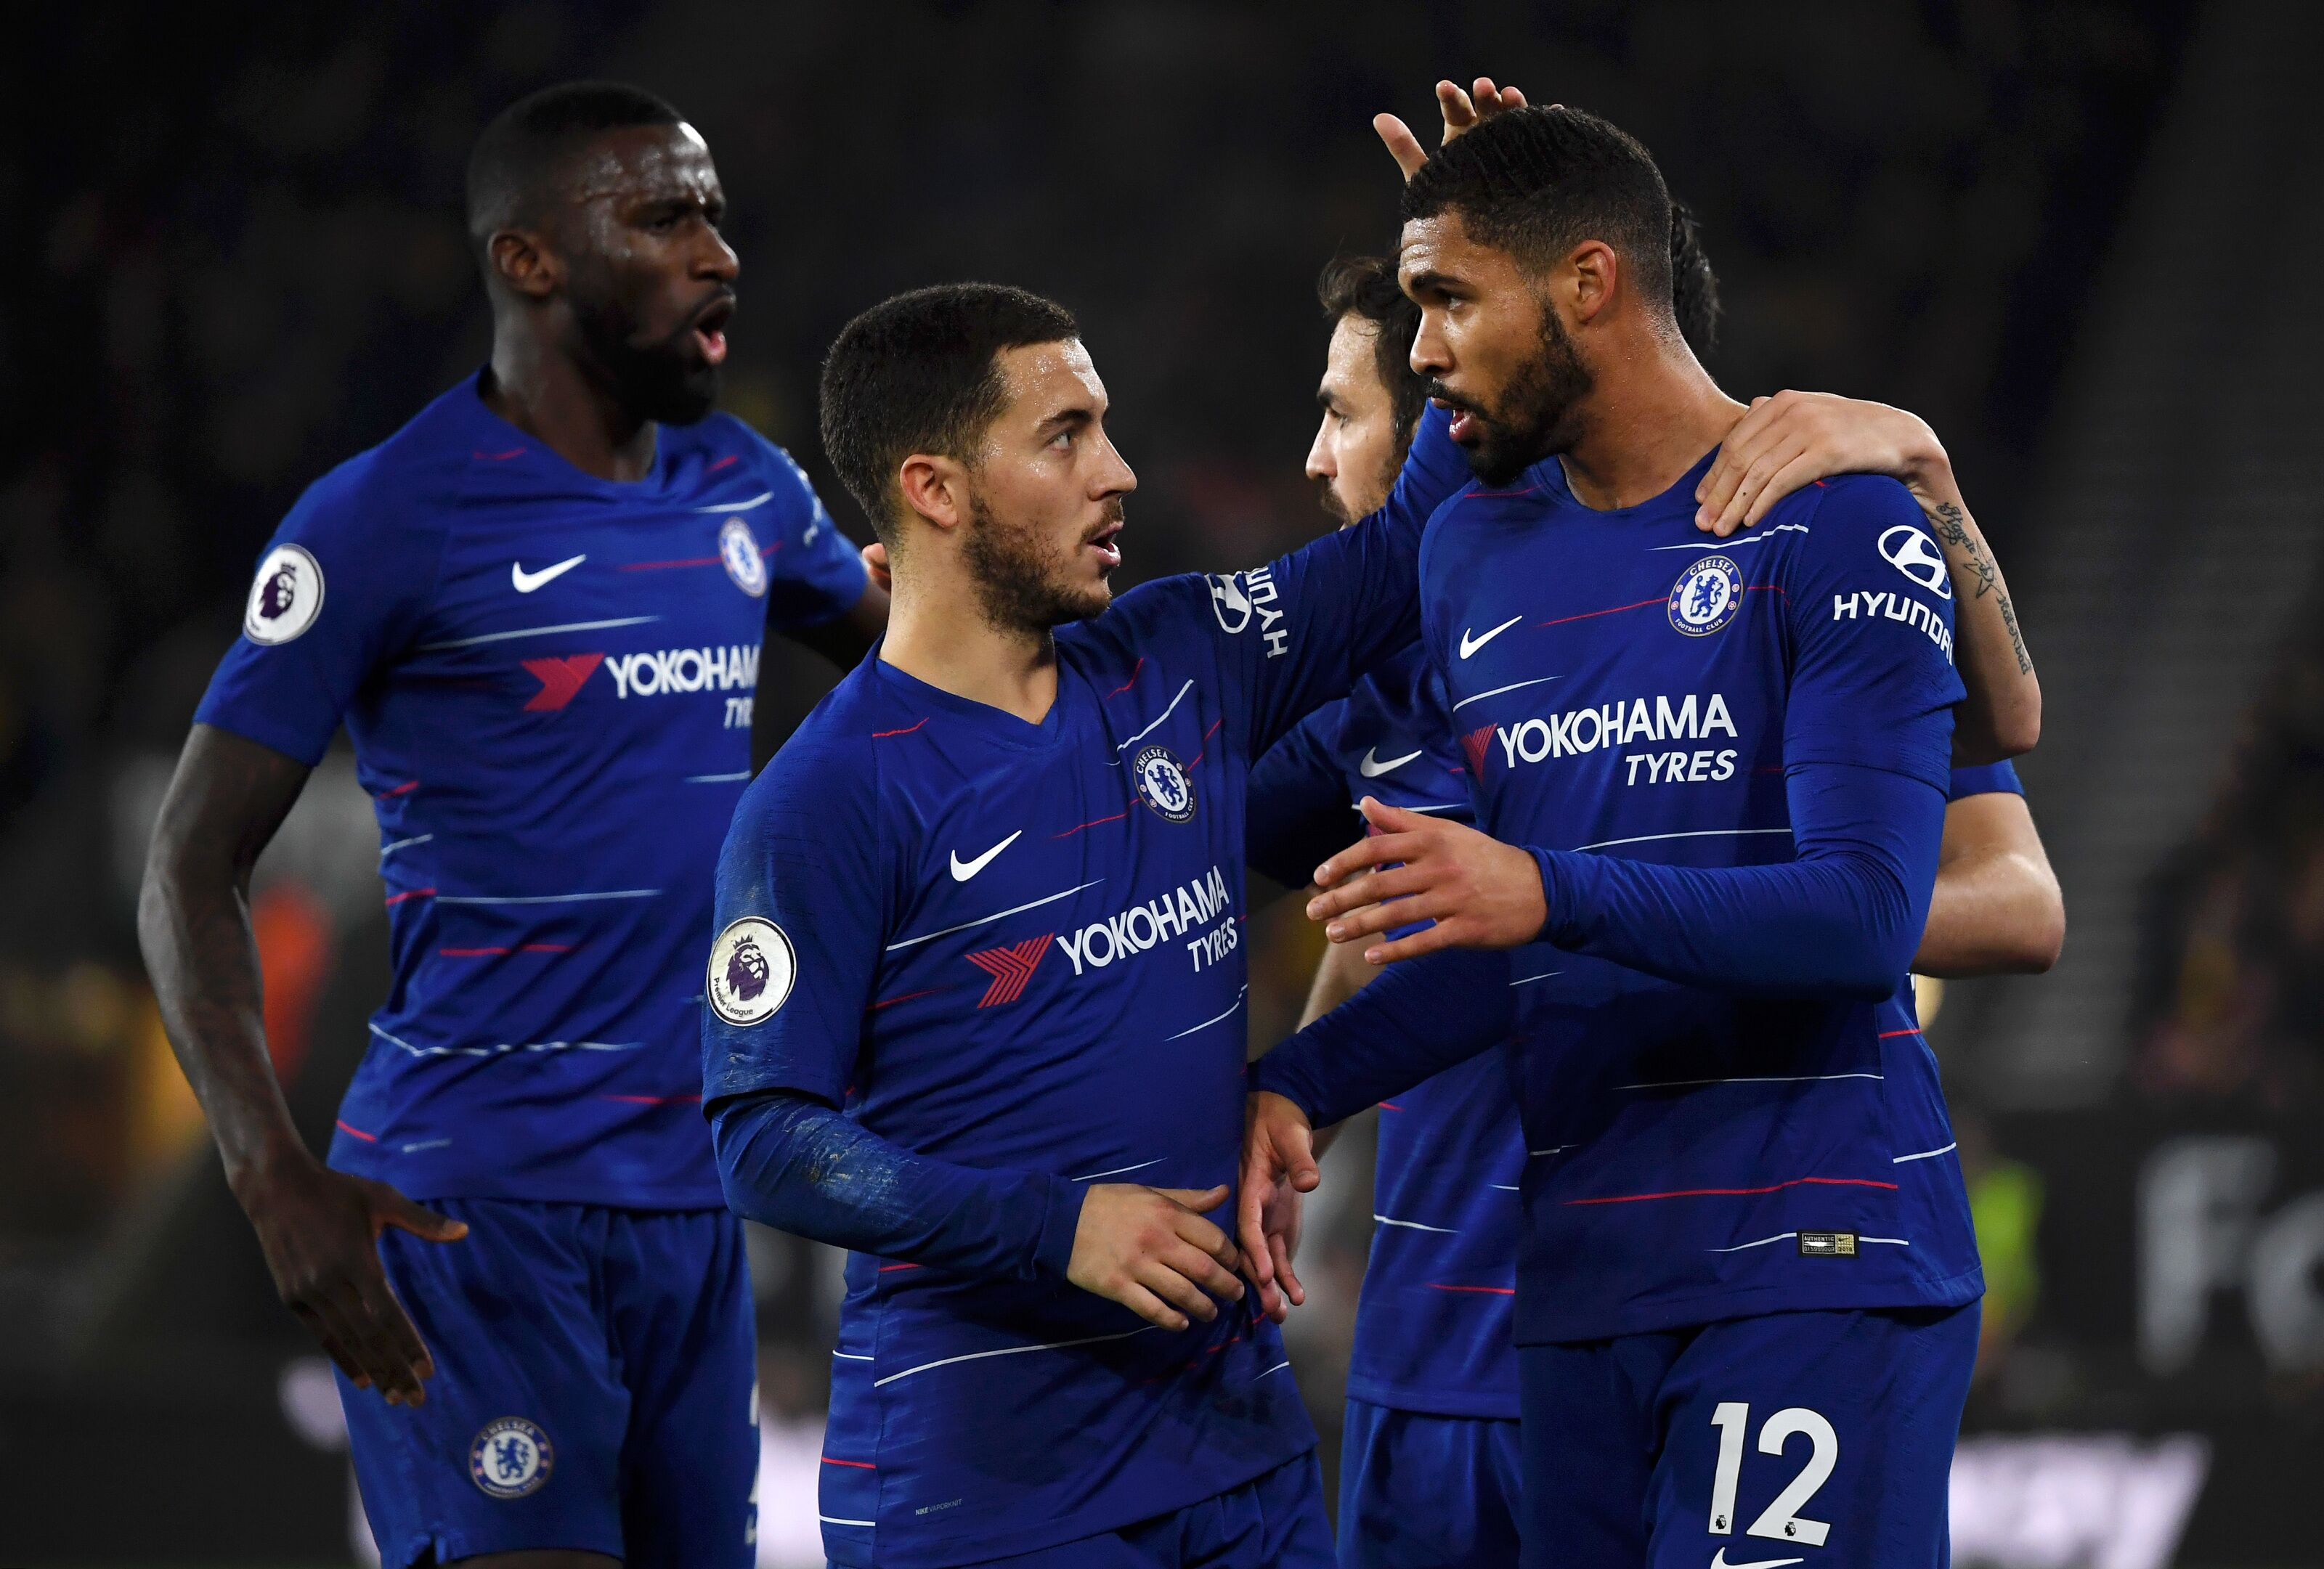 WOLVERHAMPTON, ENGLAND - DECEMBER 05: Ruben Loftus-Cheek of Chelsea celebrates with teammate Eden Hazard after scoring his team's first goal during the Premier League match between Wolverhampton Wanderers and Chelsea FC at Molineux on December 4, 2018 in Wolverhampton, United Kingdom. (Photo by Chelsea Football Club/Chelsea FC via Getty Images)